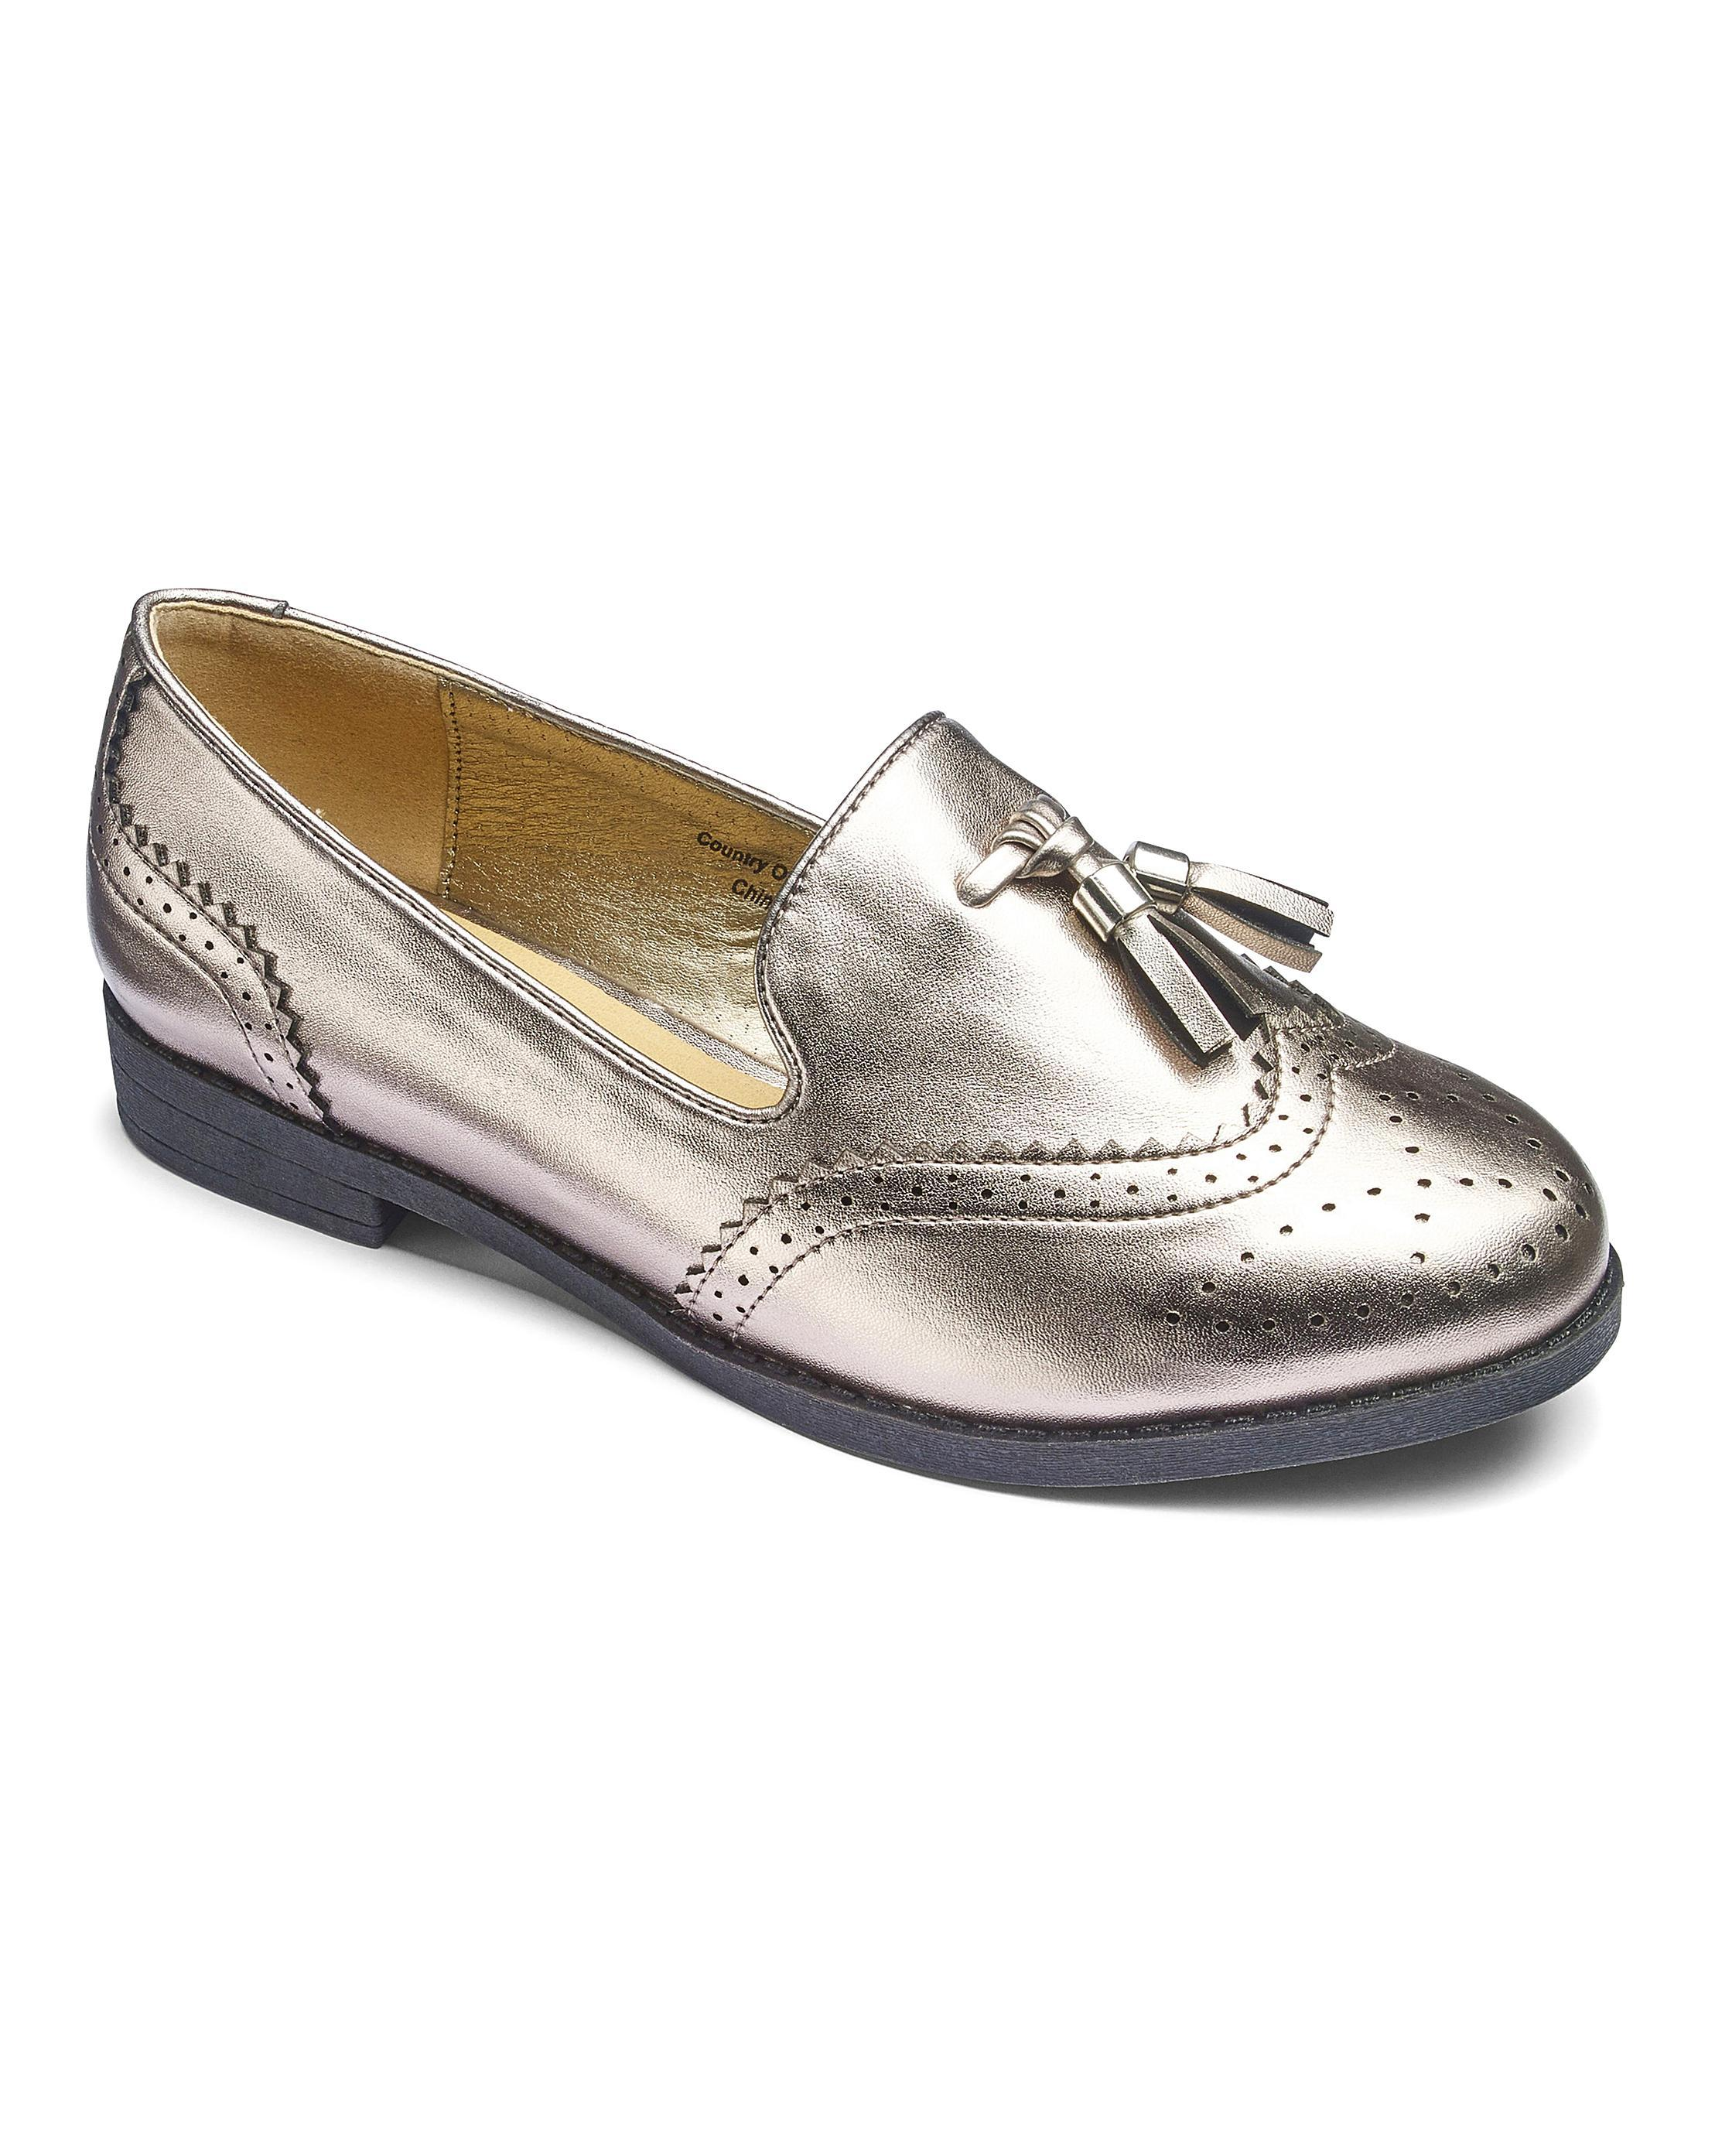 049b9977b78 ... Sole Diva Tassel Loafers - Lyst. View fullscreen